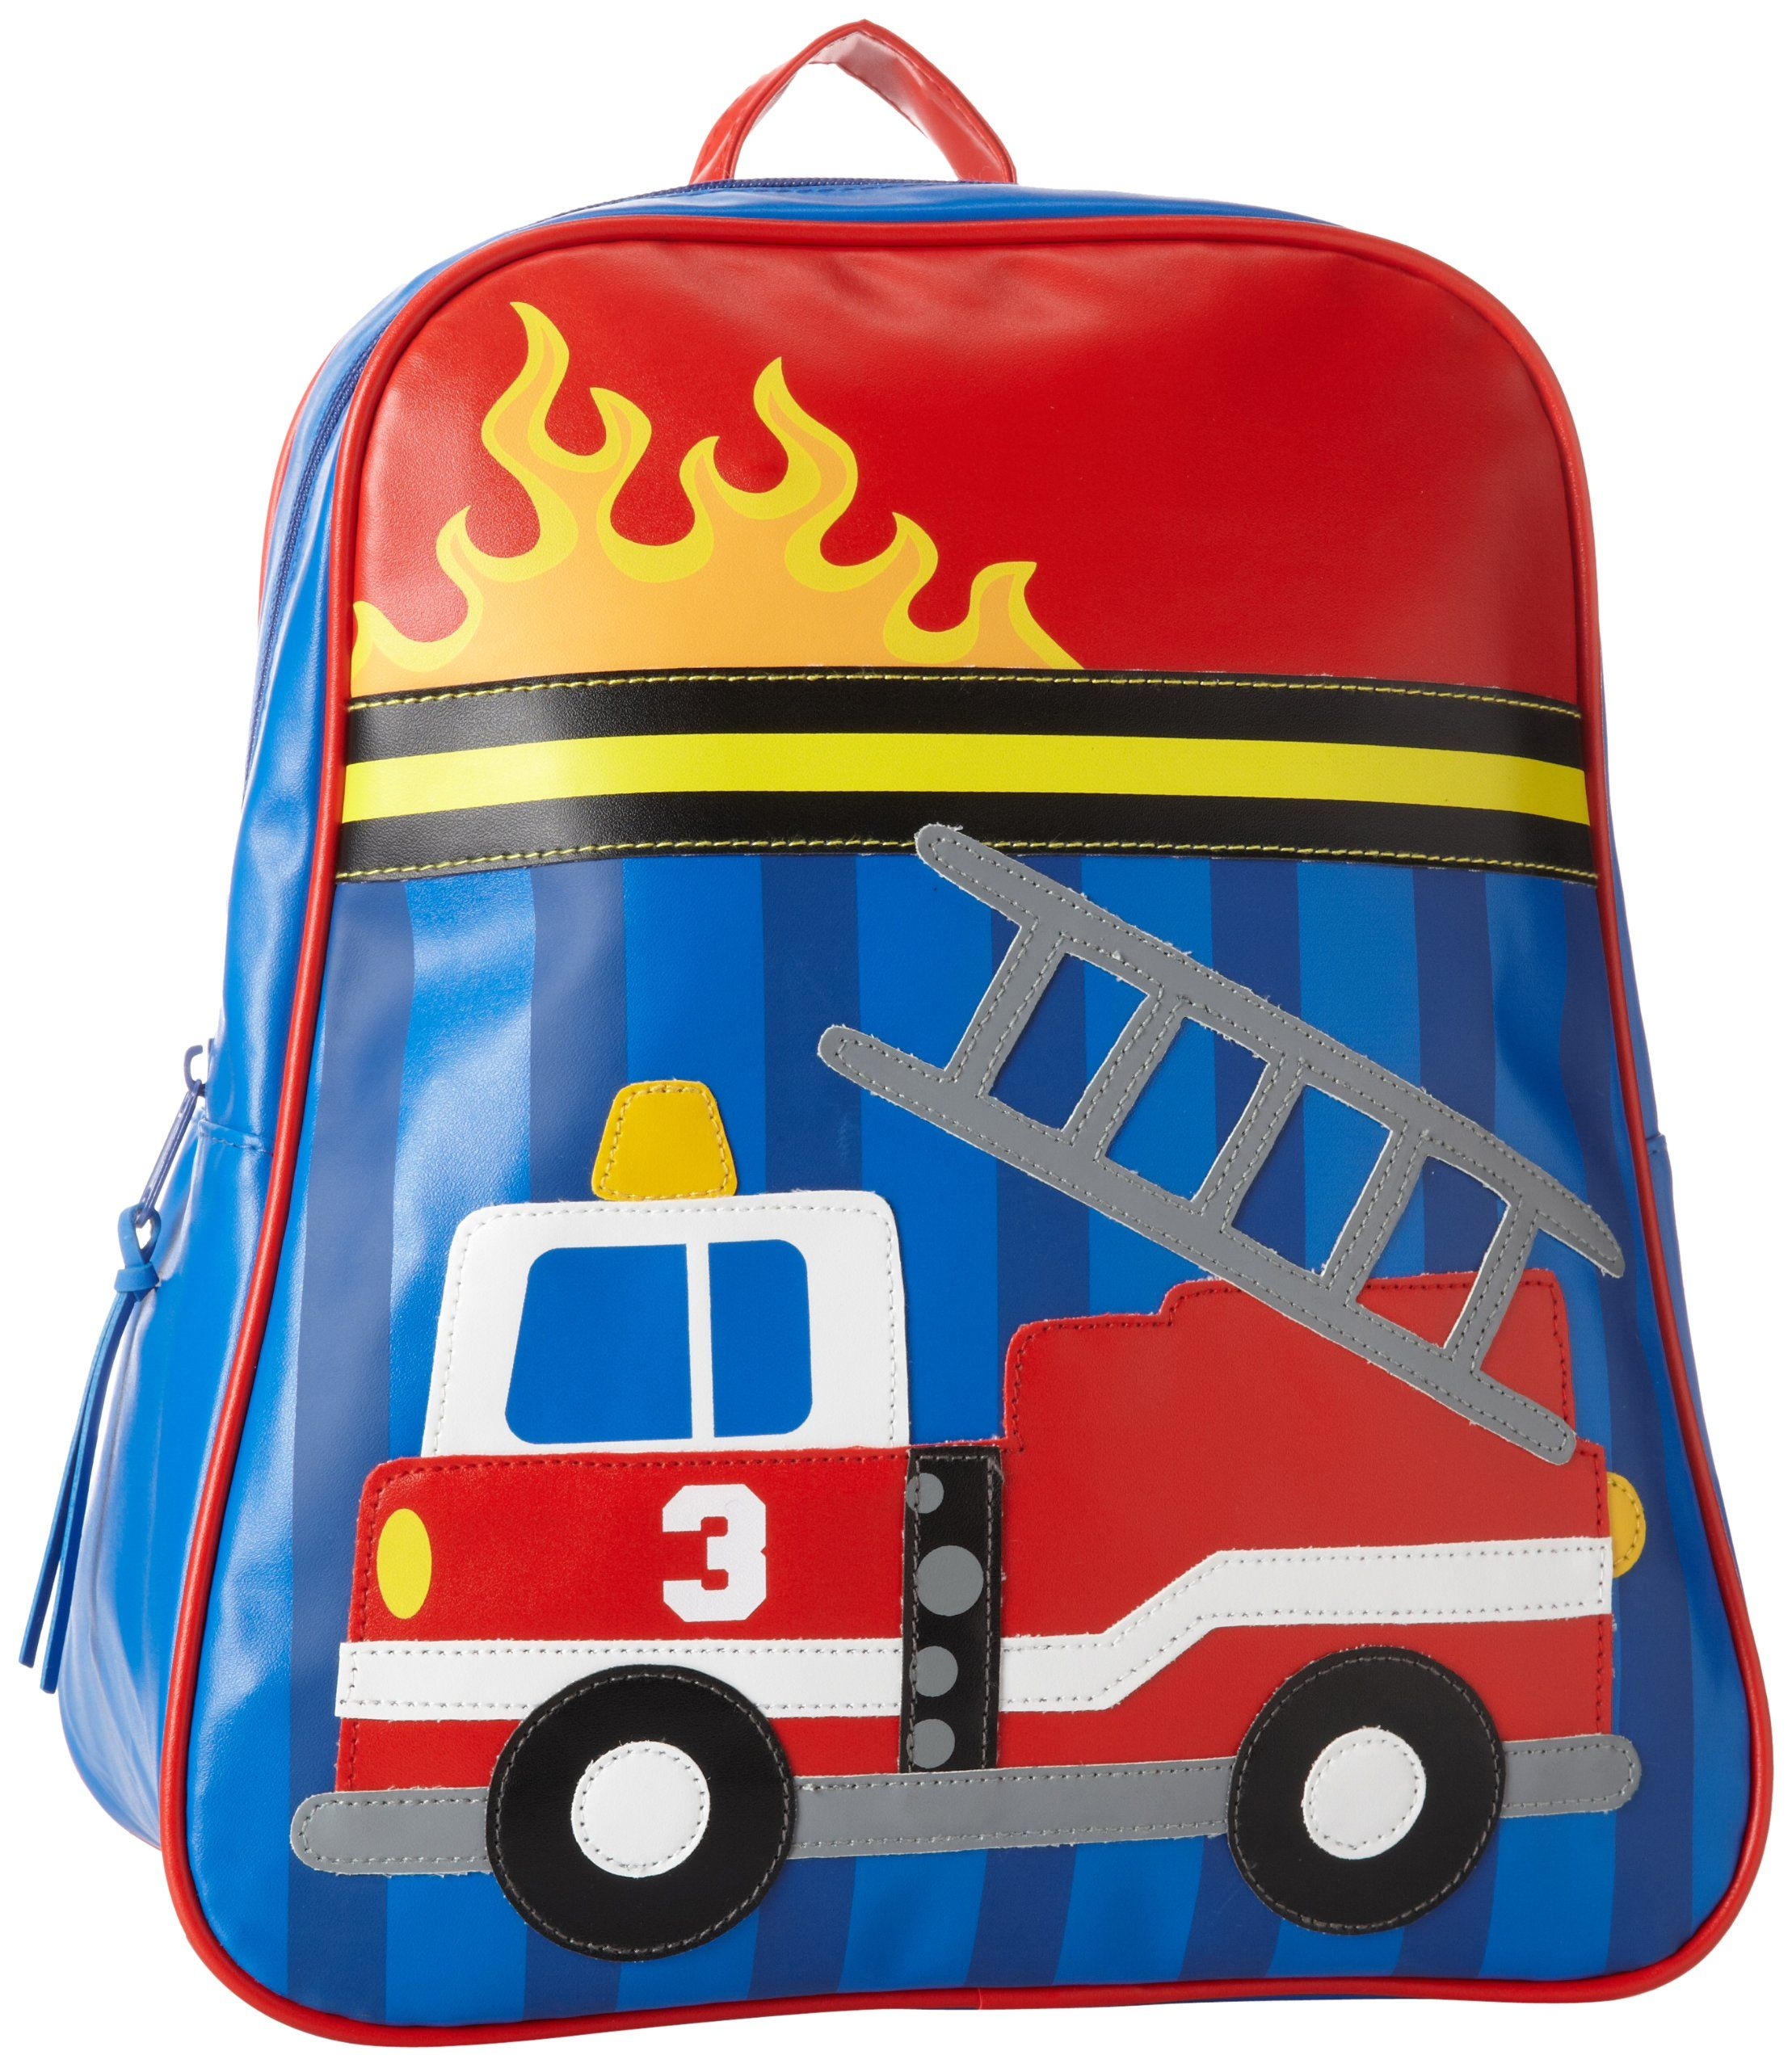 a7355ff1bc58 Stephen Joseph Little Boys' Go Go Bag, Firetruck, One Size | Henry ...